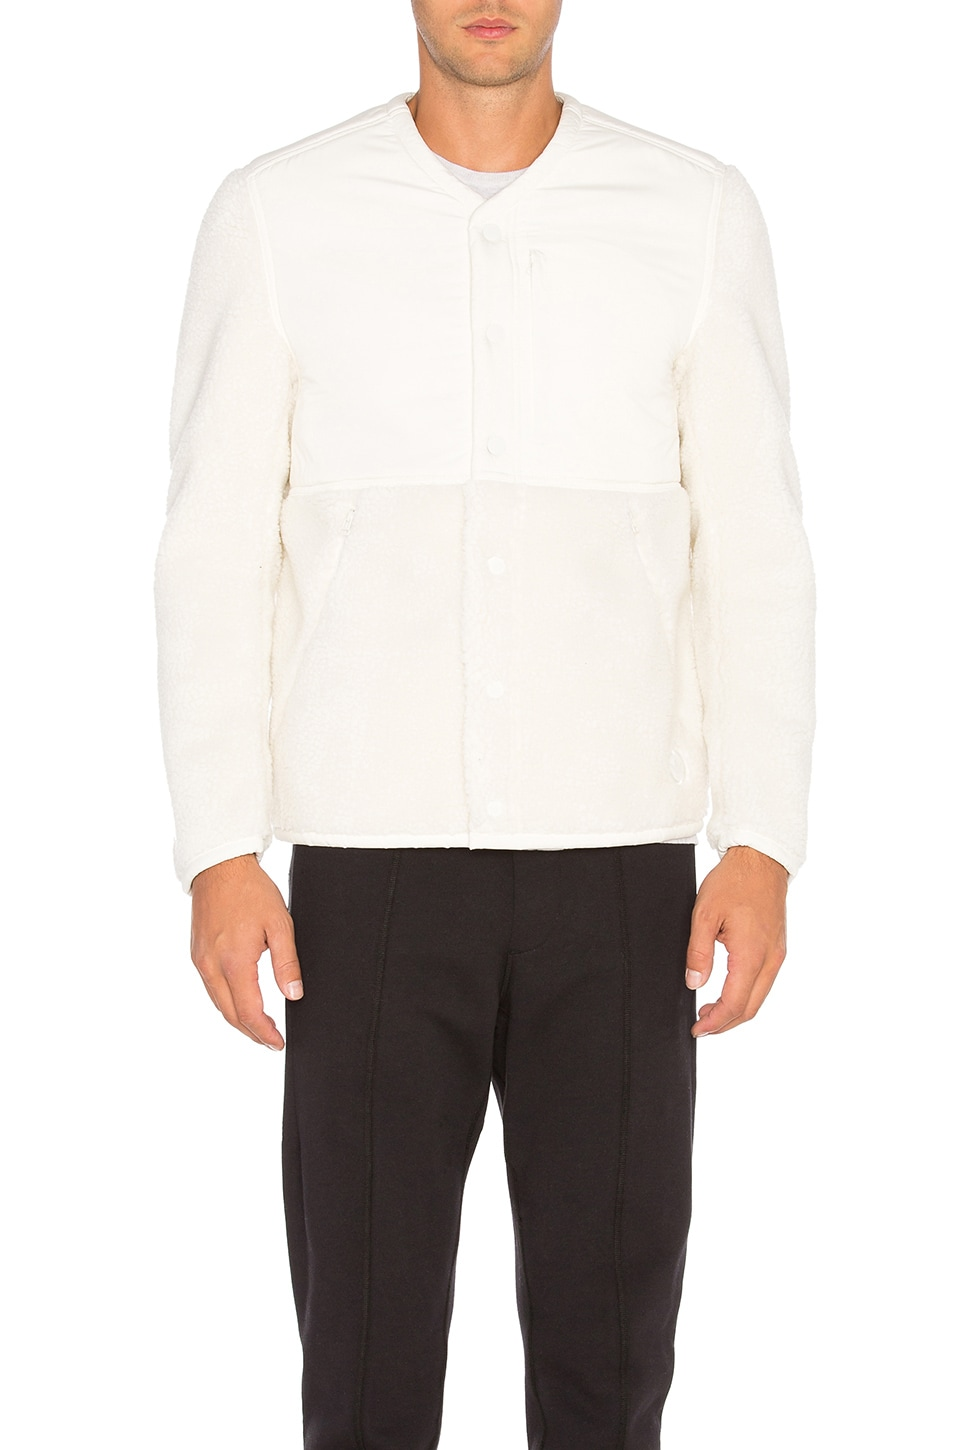 Sherpa Jacket by adidas by wings + horns